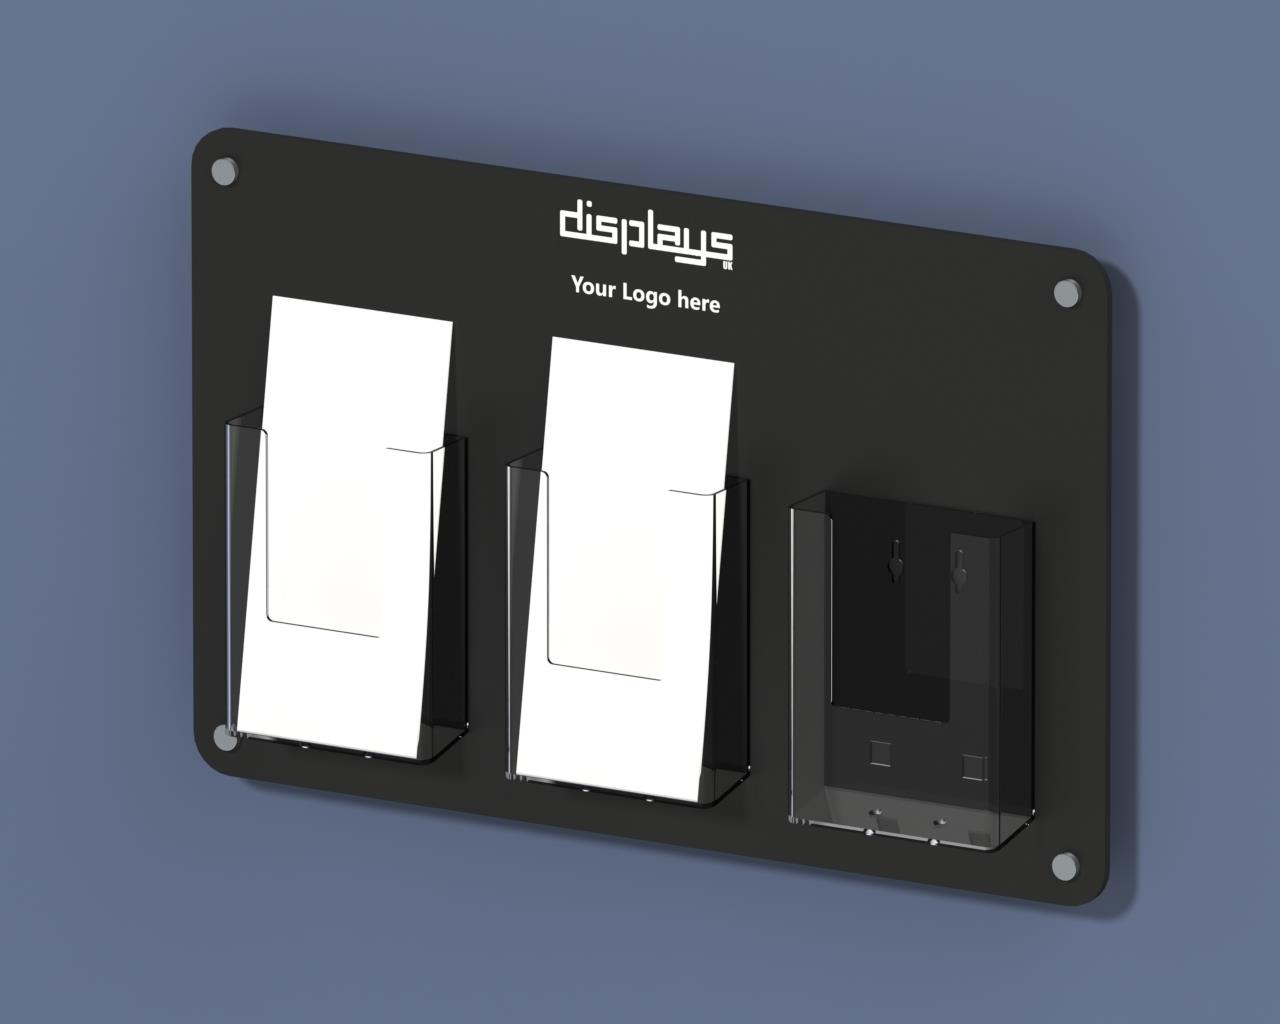 Vision Triple DL 1/3rd A4 Perspex leaflet Holder Wall Mounted